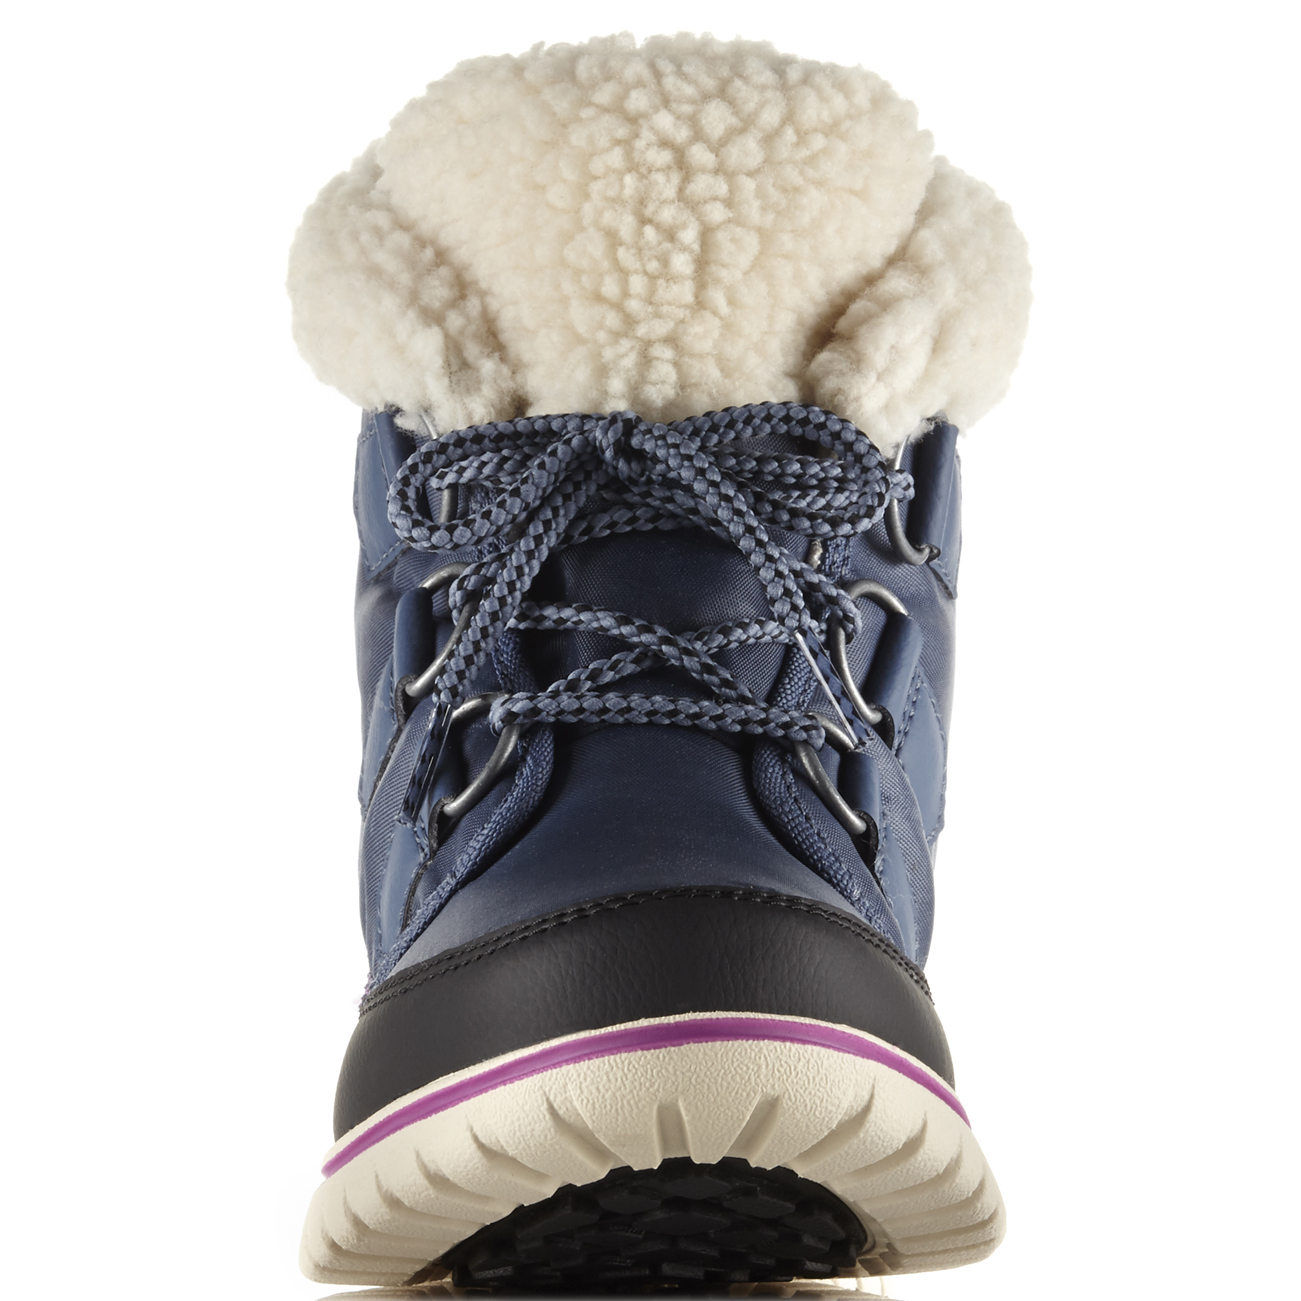 Womens Sorel Cozy Carnival Hiking Casual Winter Snow Walking Ankle Boots Us 5 11 Ebay